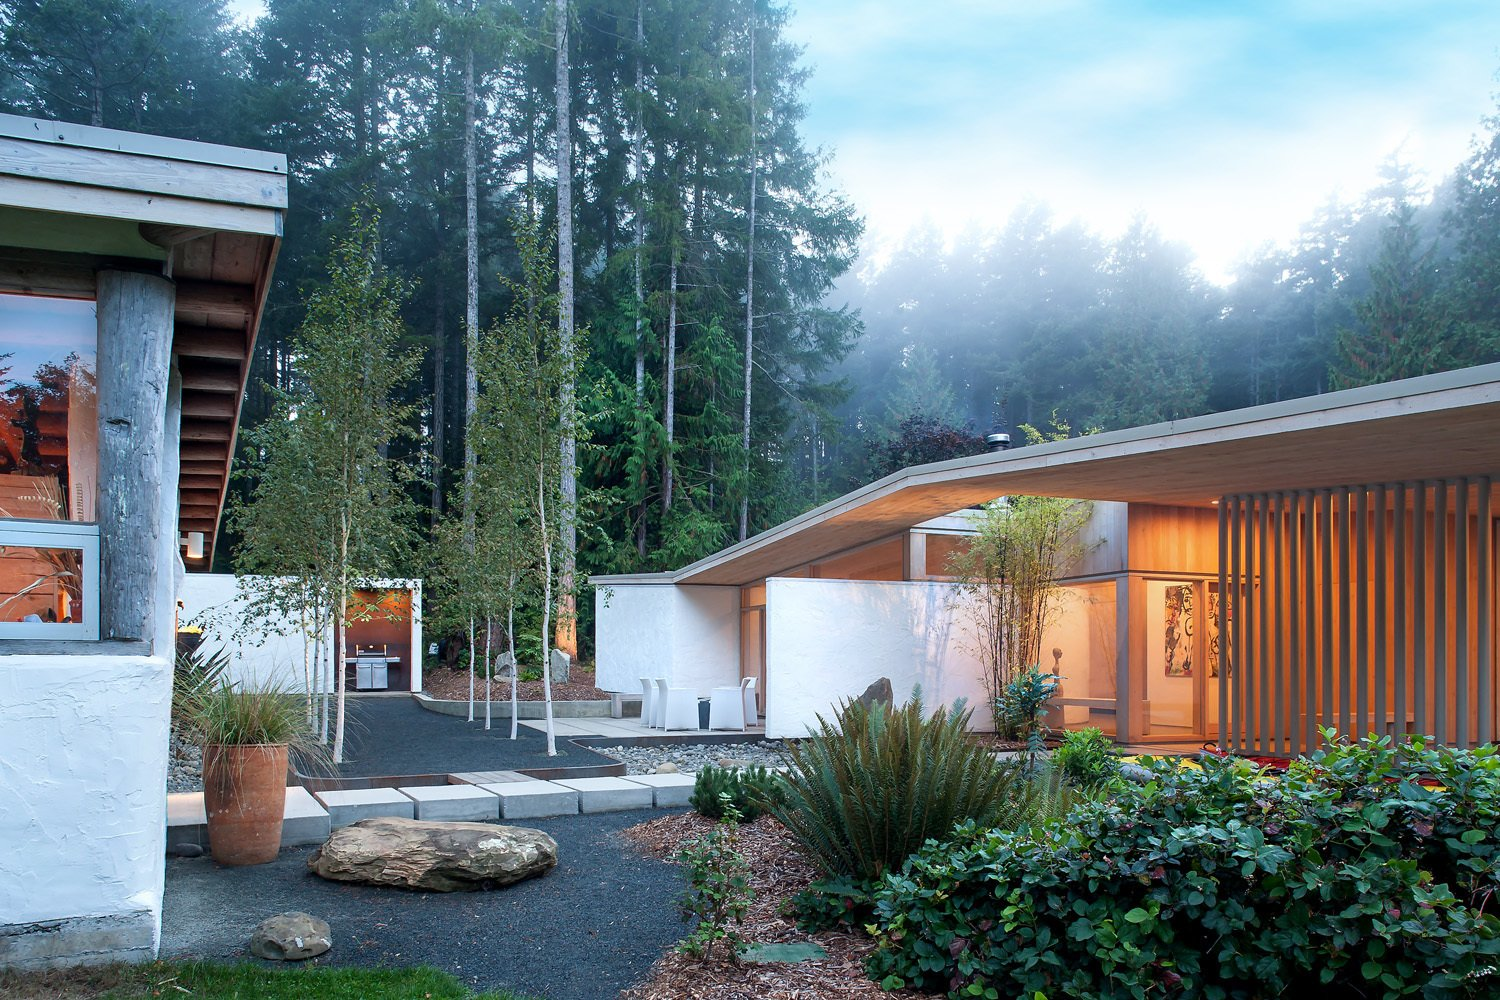 """""""The new house is not shy to look across at the old house, where you can see old rough stucco on one building, and then the same stucco on our new building,"""" Jones says. Tagged: Exterior, House, and Stucco Siding Material.  Super Secluded Homes by Luke Hopping from A Couple's Cherished Vacation Home is Given a Second Life"""